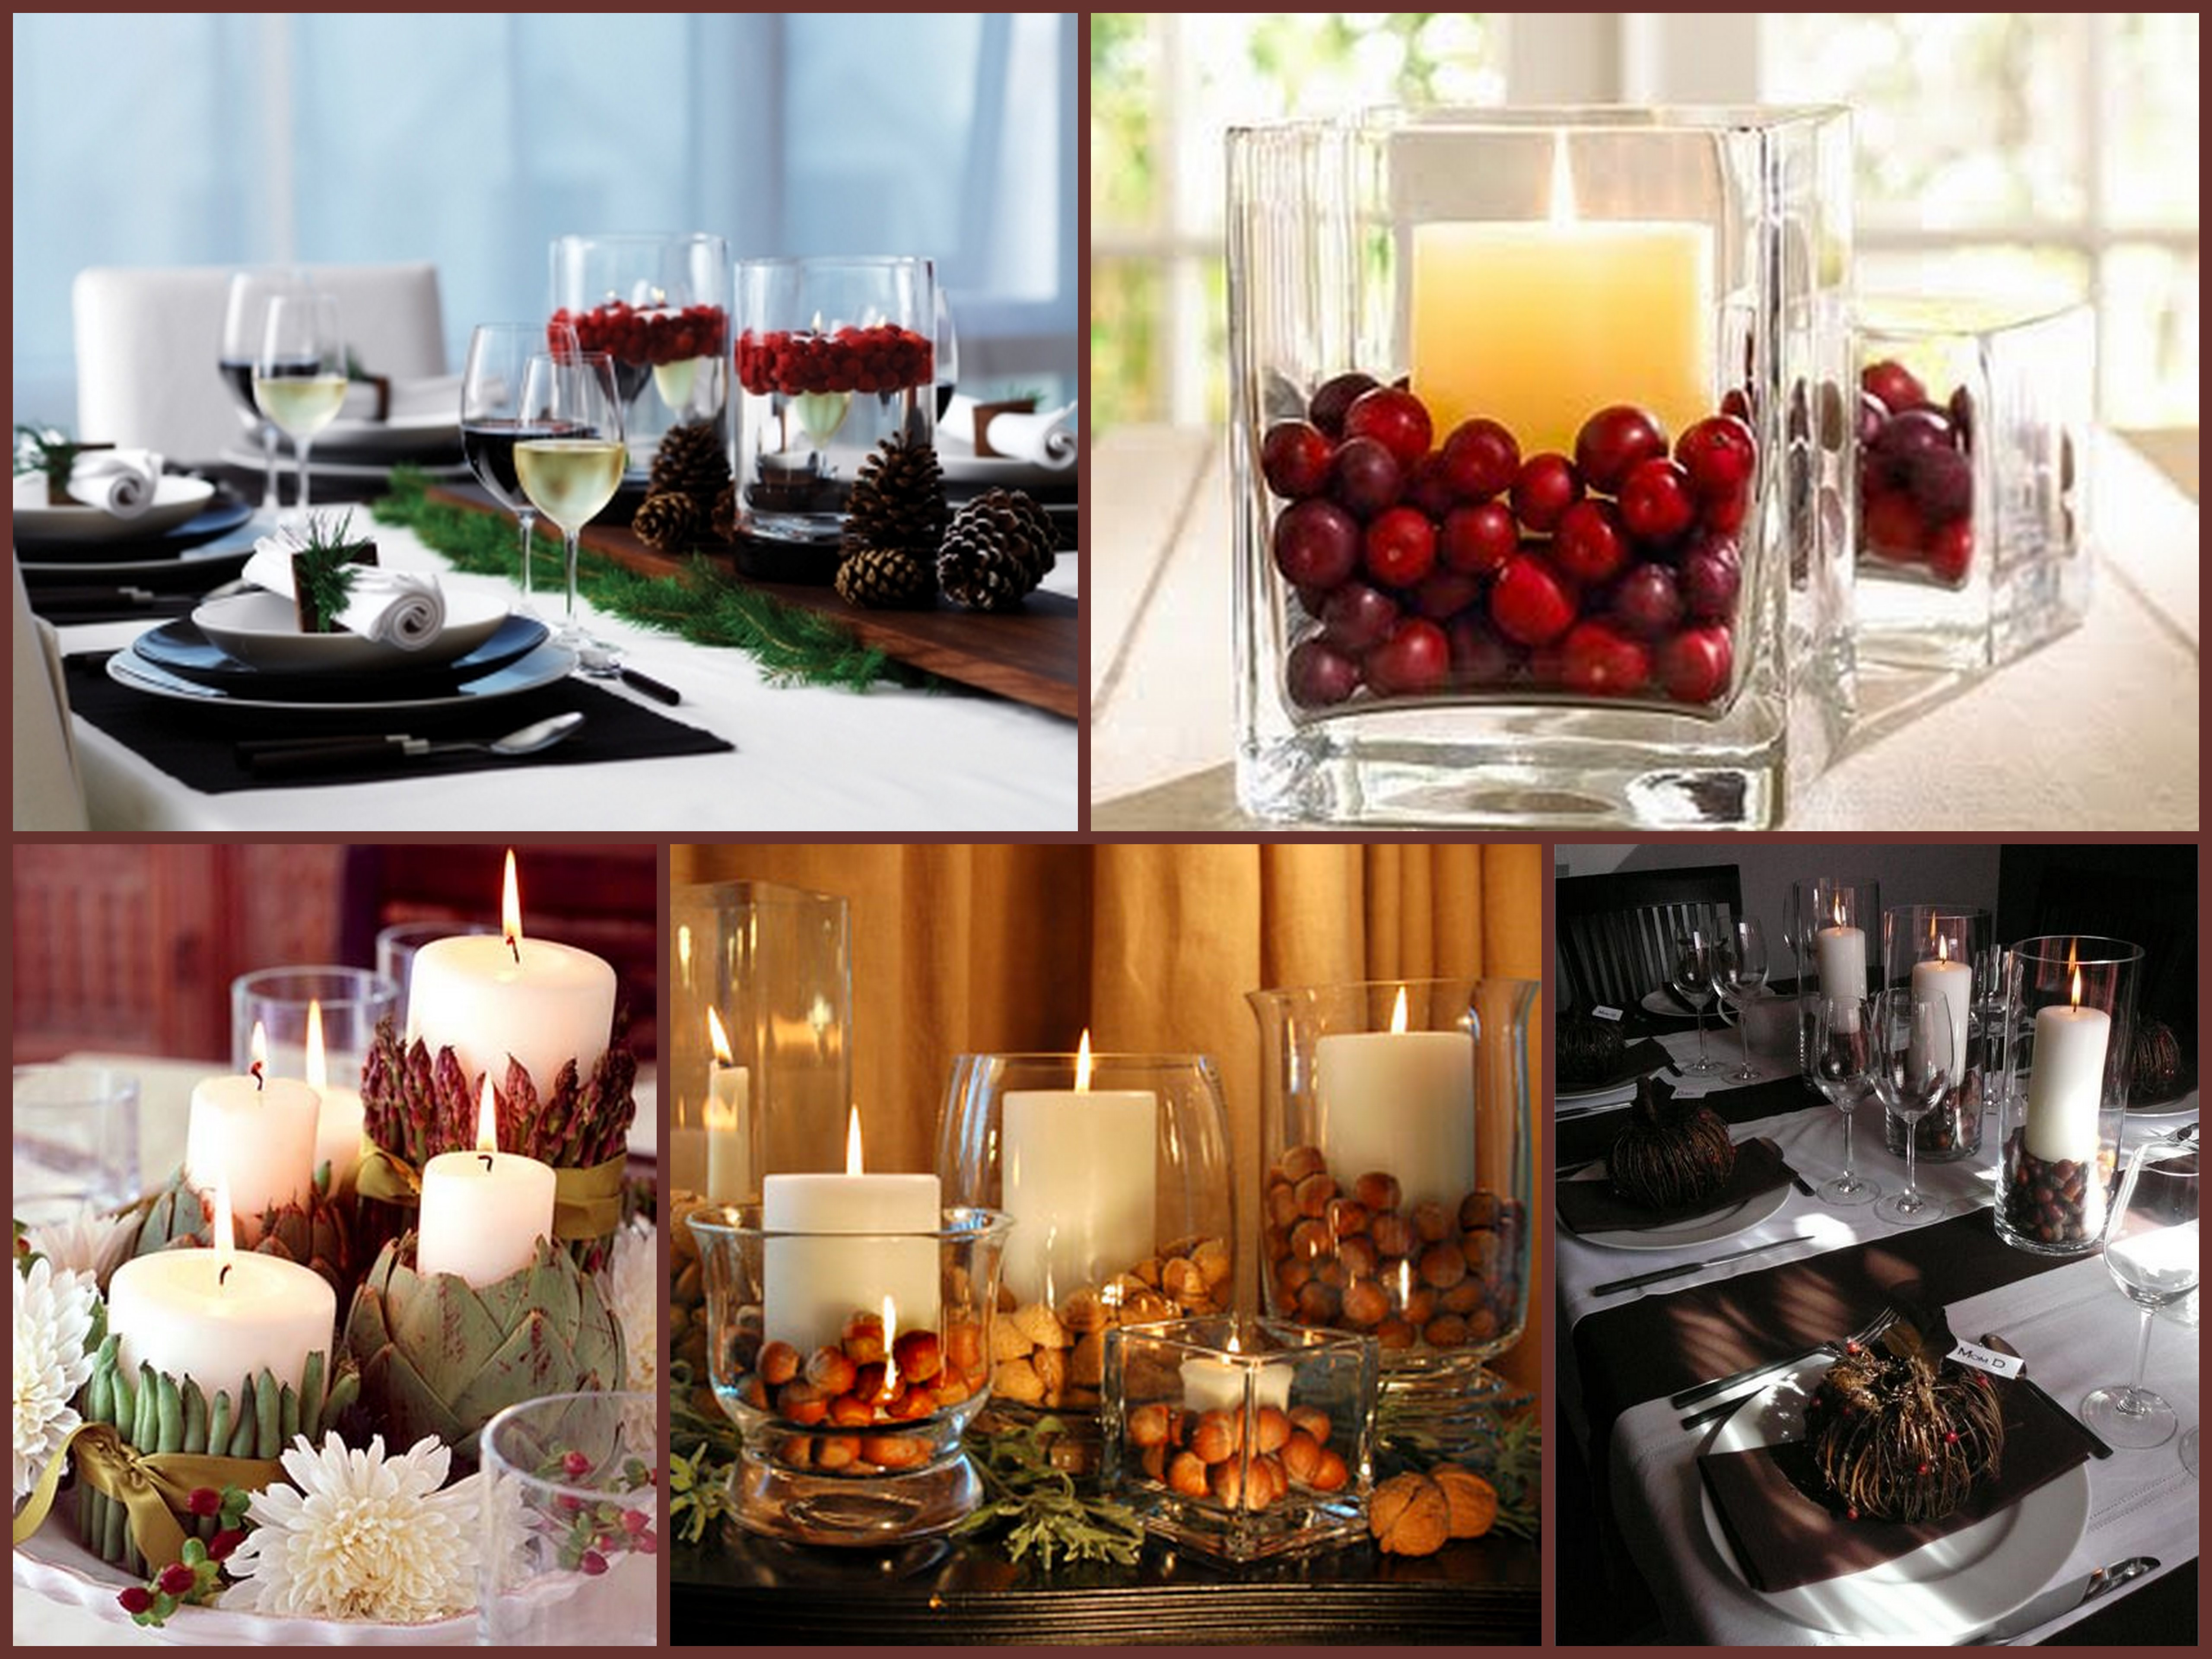 Table Decorations For Thanksgiving  Last Minute Holiday Centerpiece – A S D INTERIORS BLOG